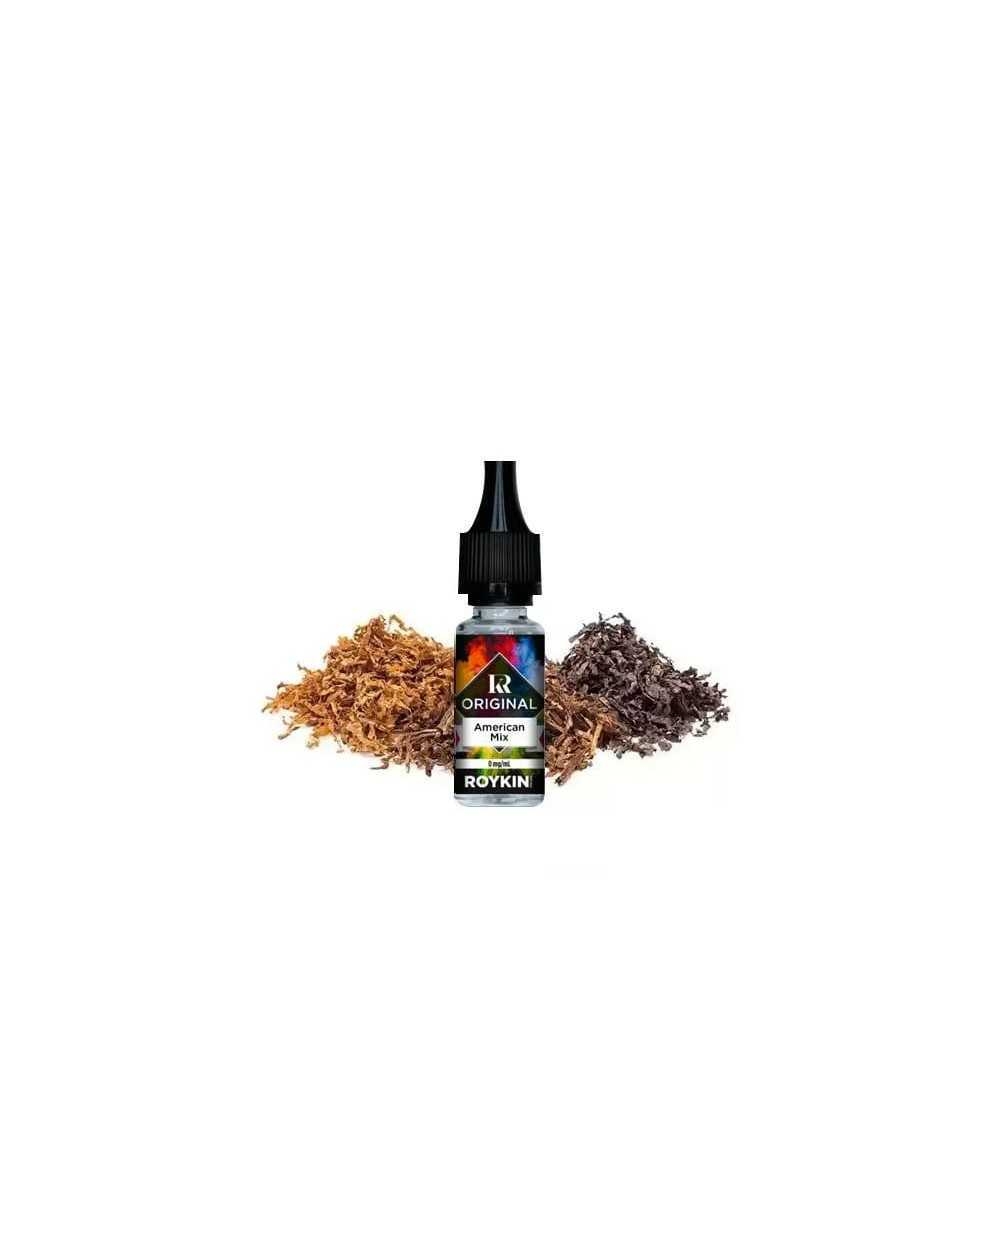 American Mix 10ml - Roykin-1